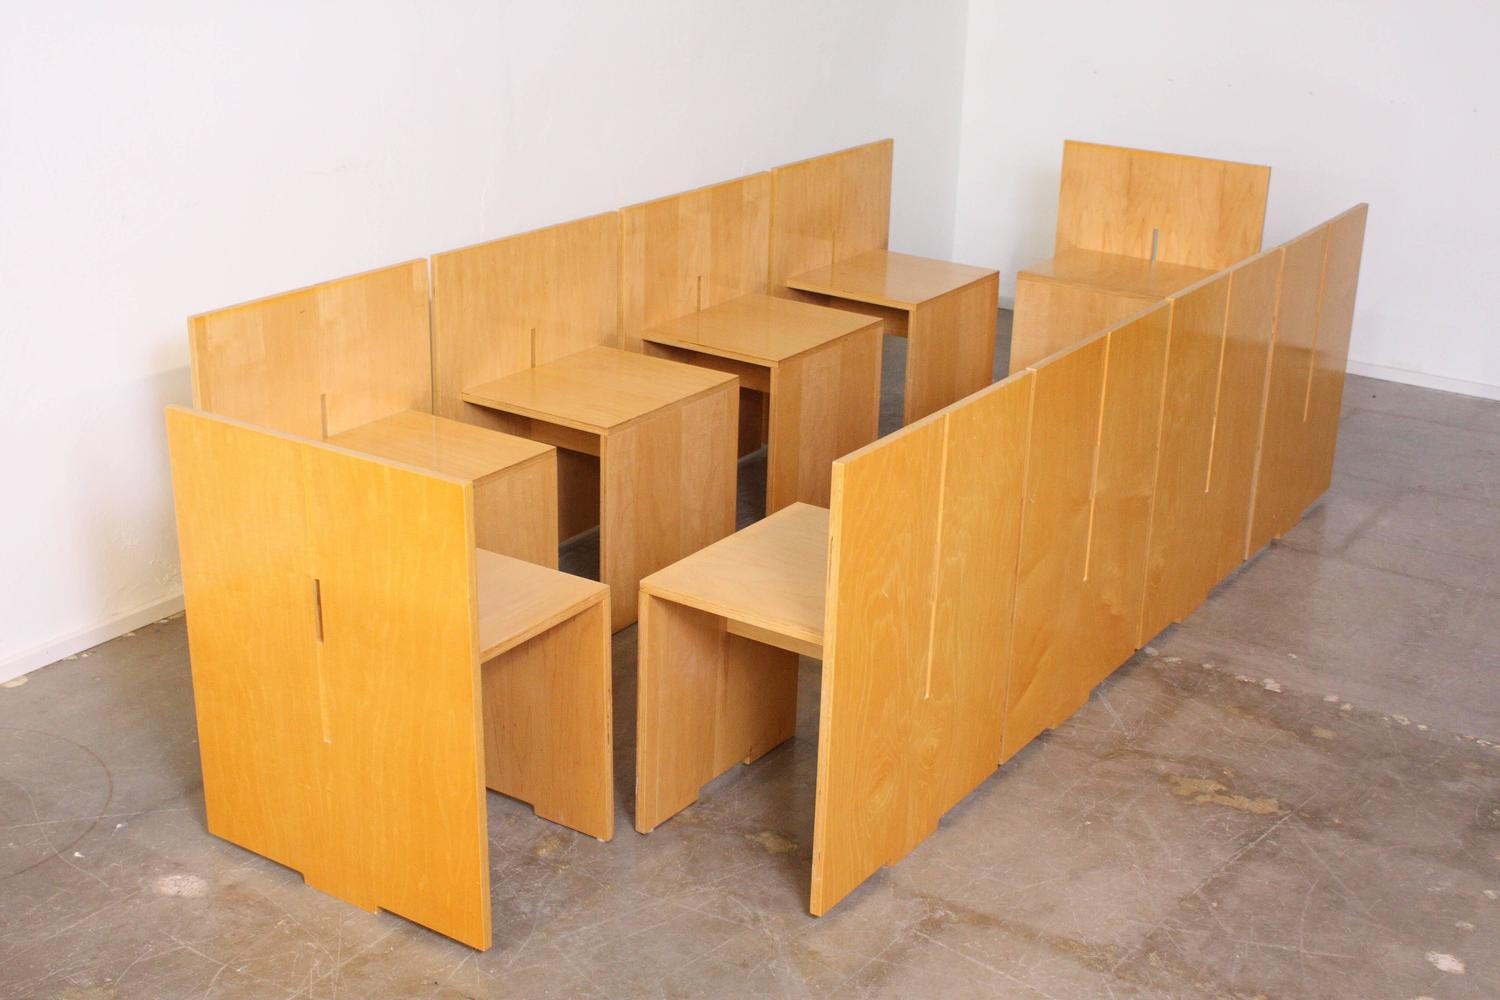 Architectural Dining Table And Ten Chairs In The Style Of